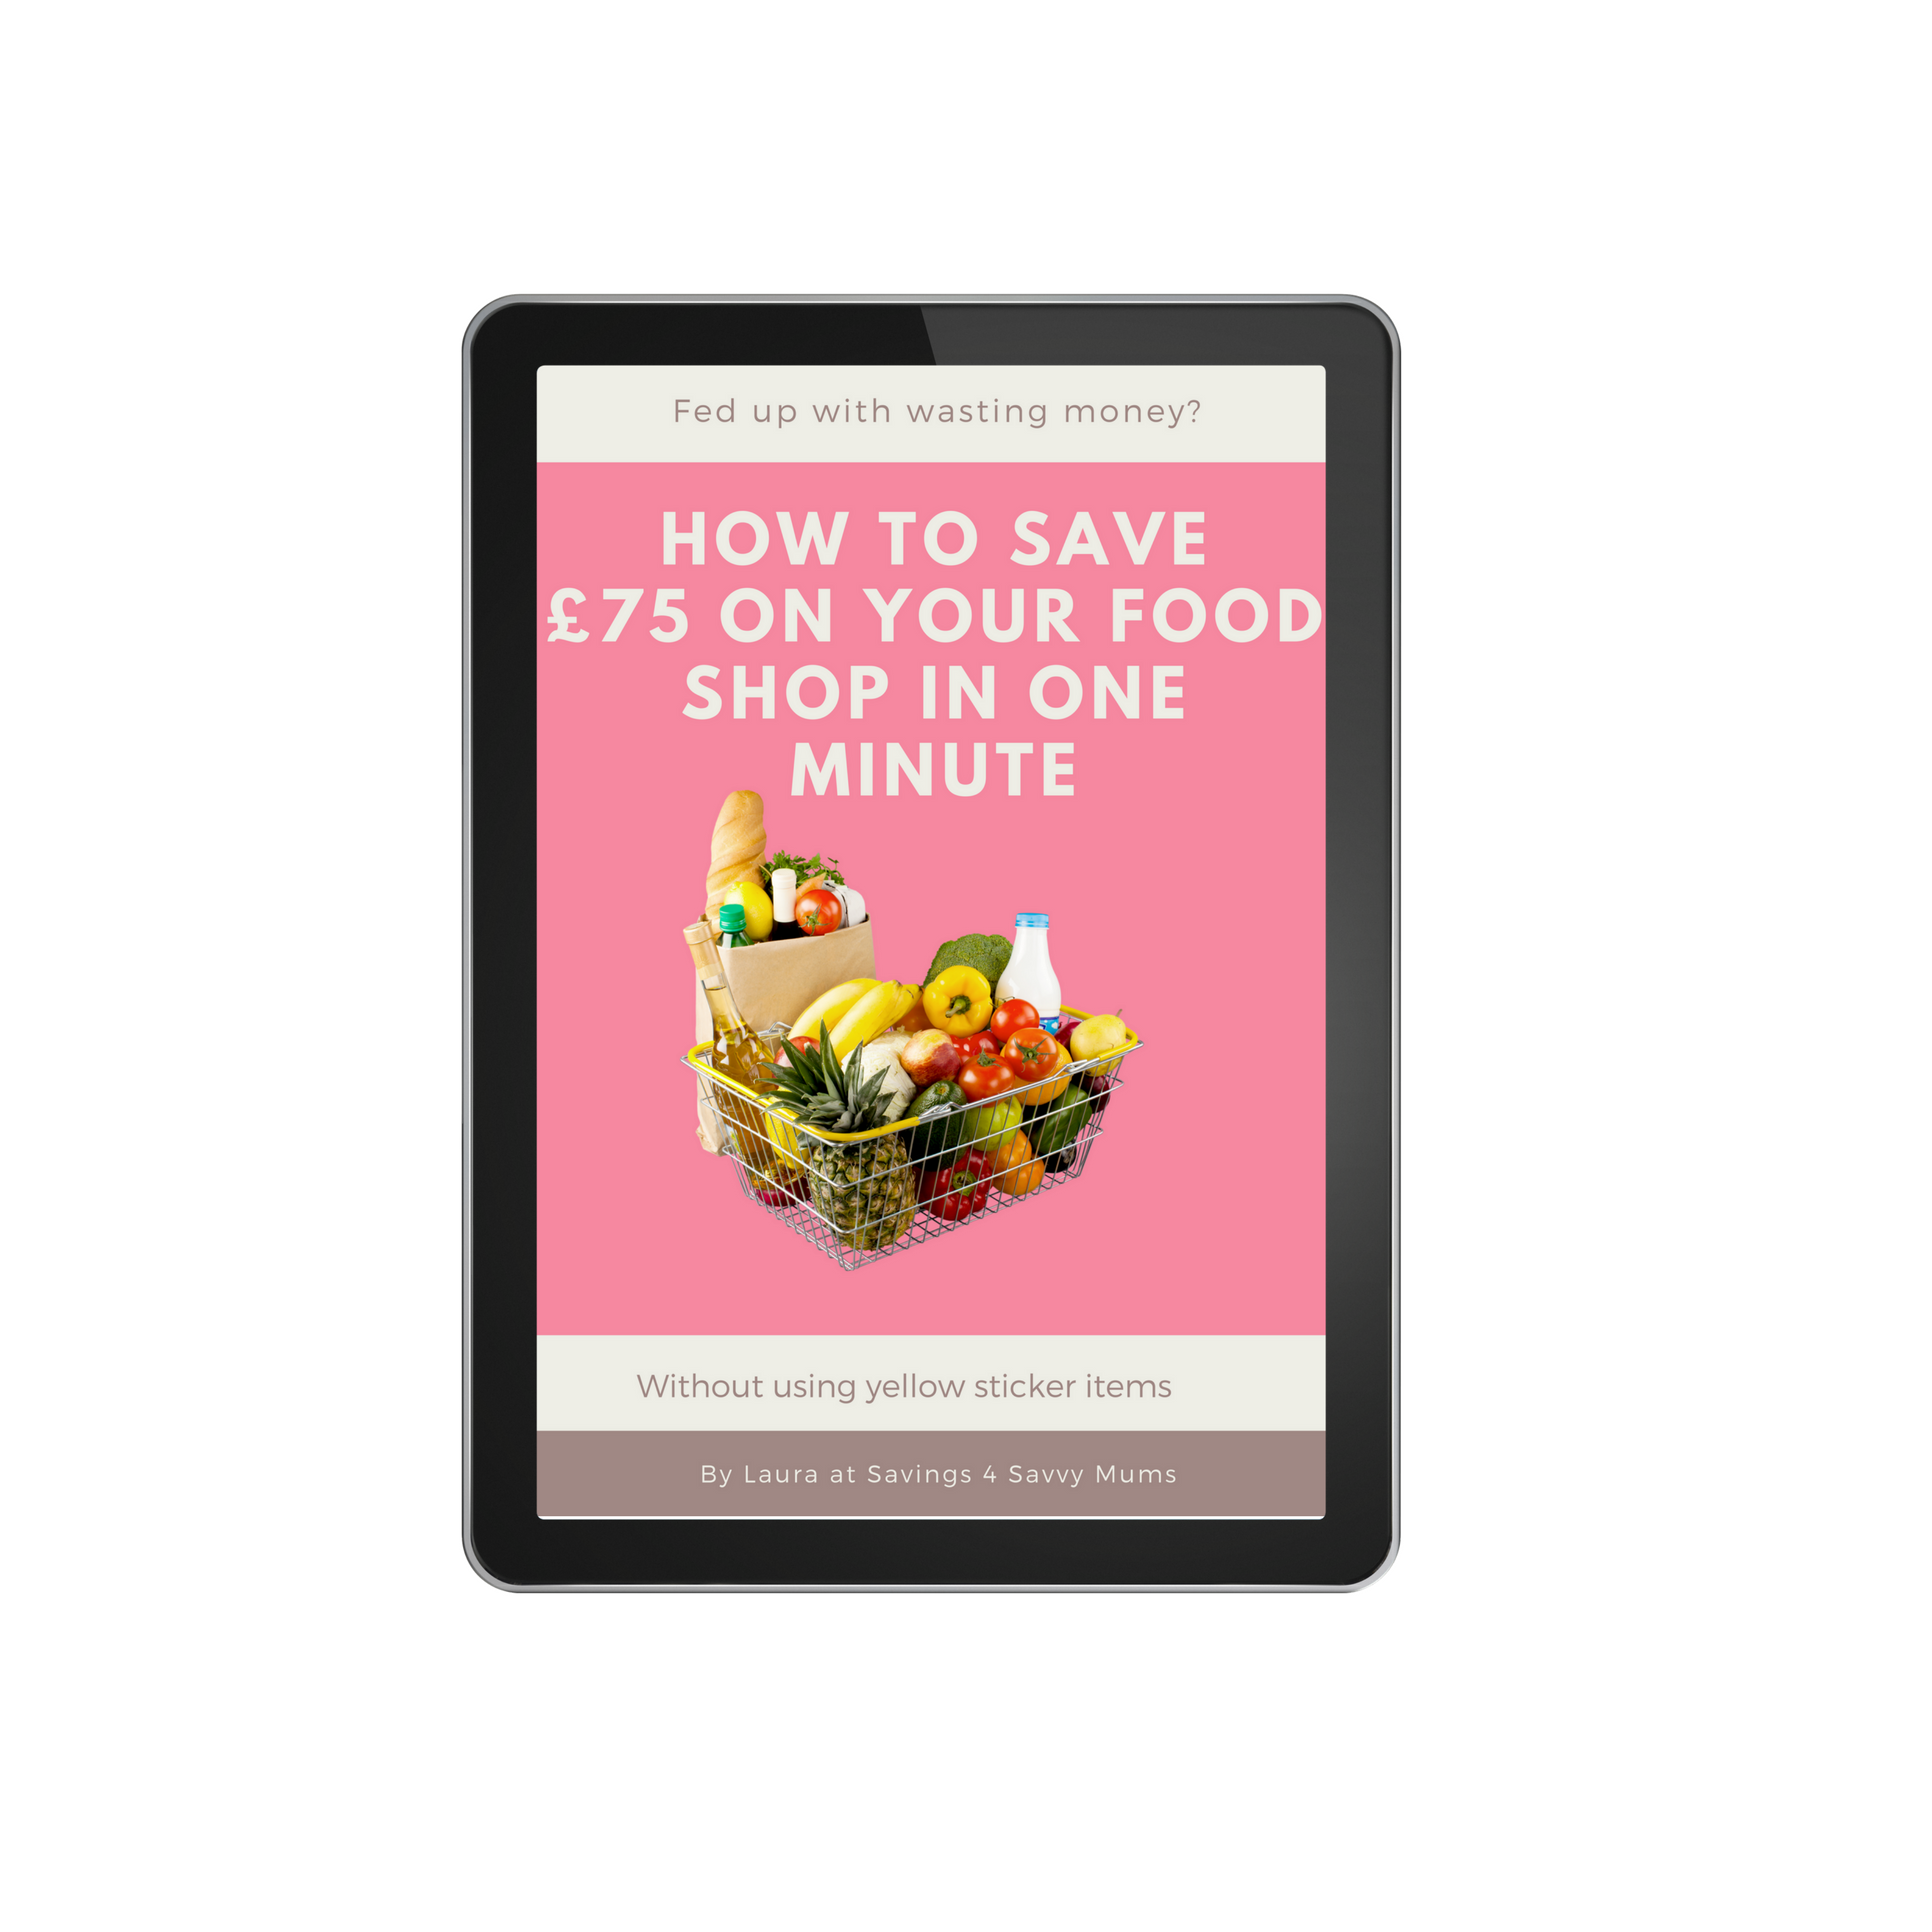 How To Save £75 On Your Food Shop In One Minute